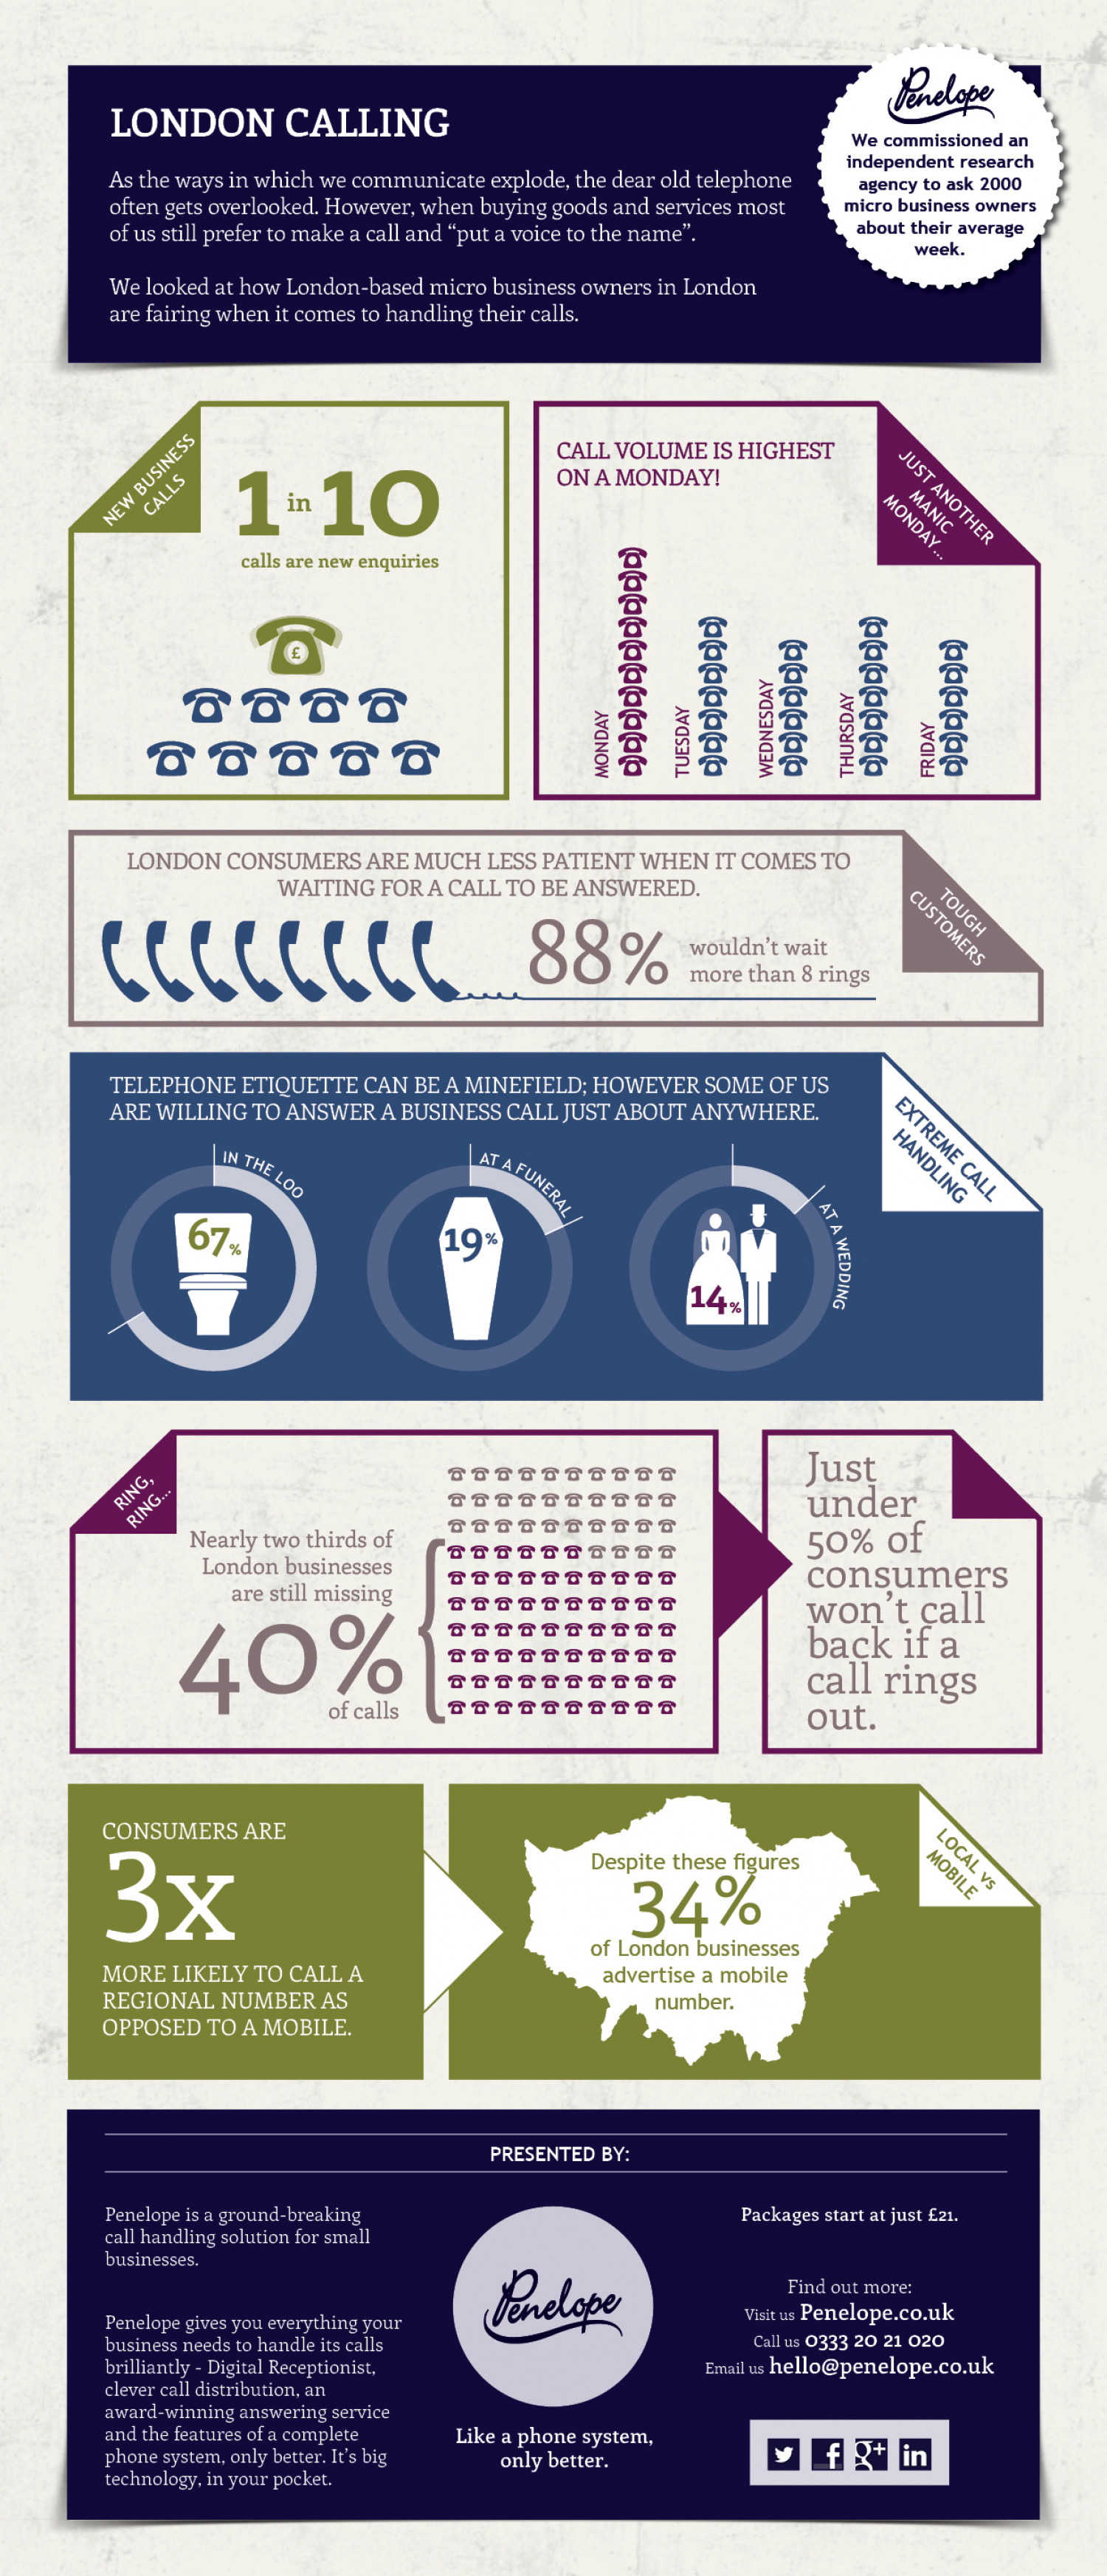 How do micro business owners in London fare when it comes to managing their calls? Infographic